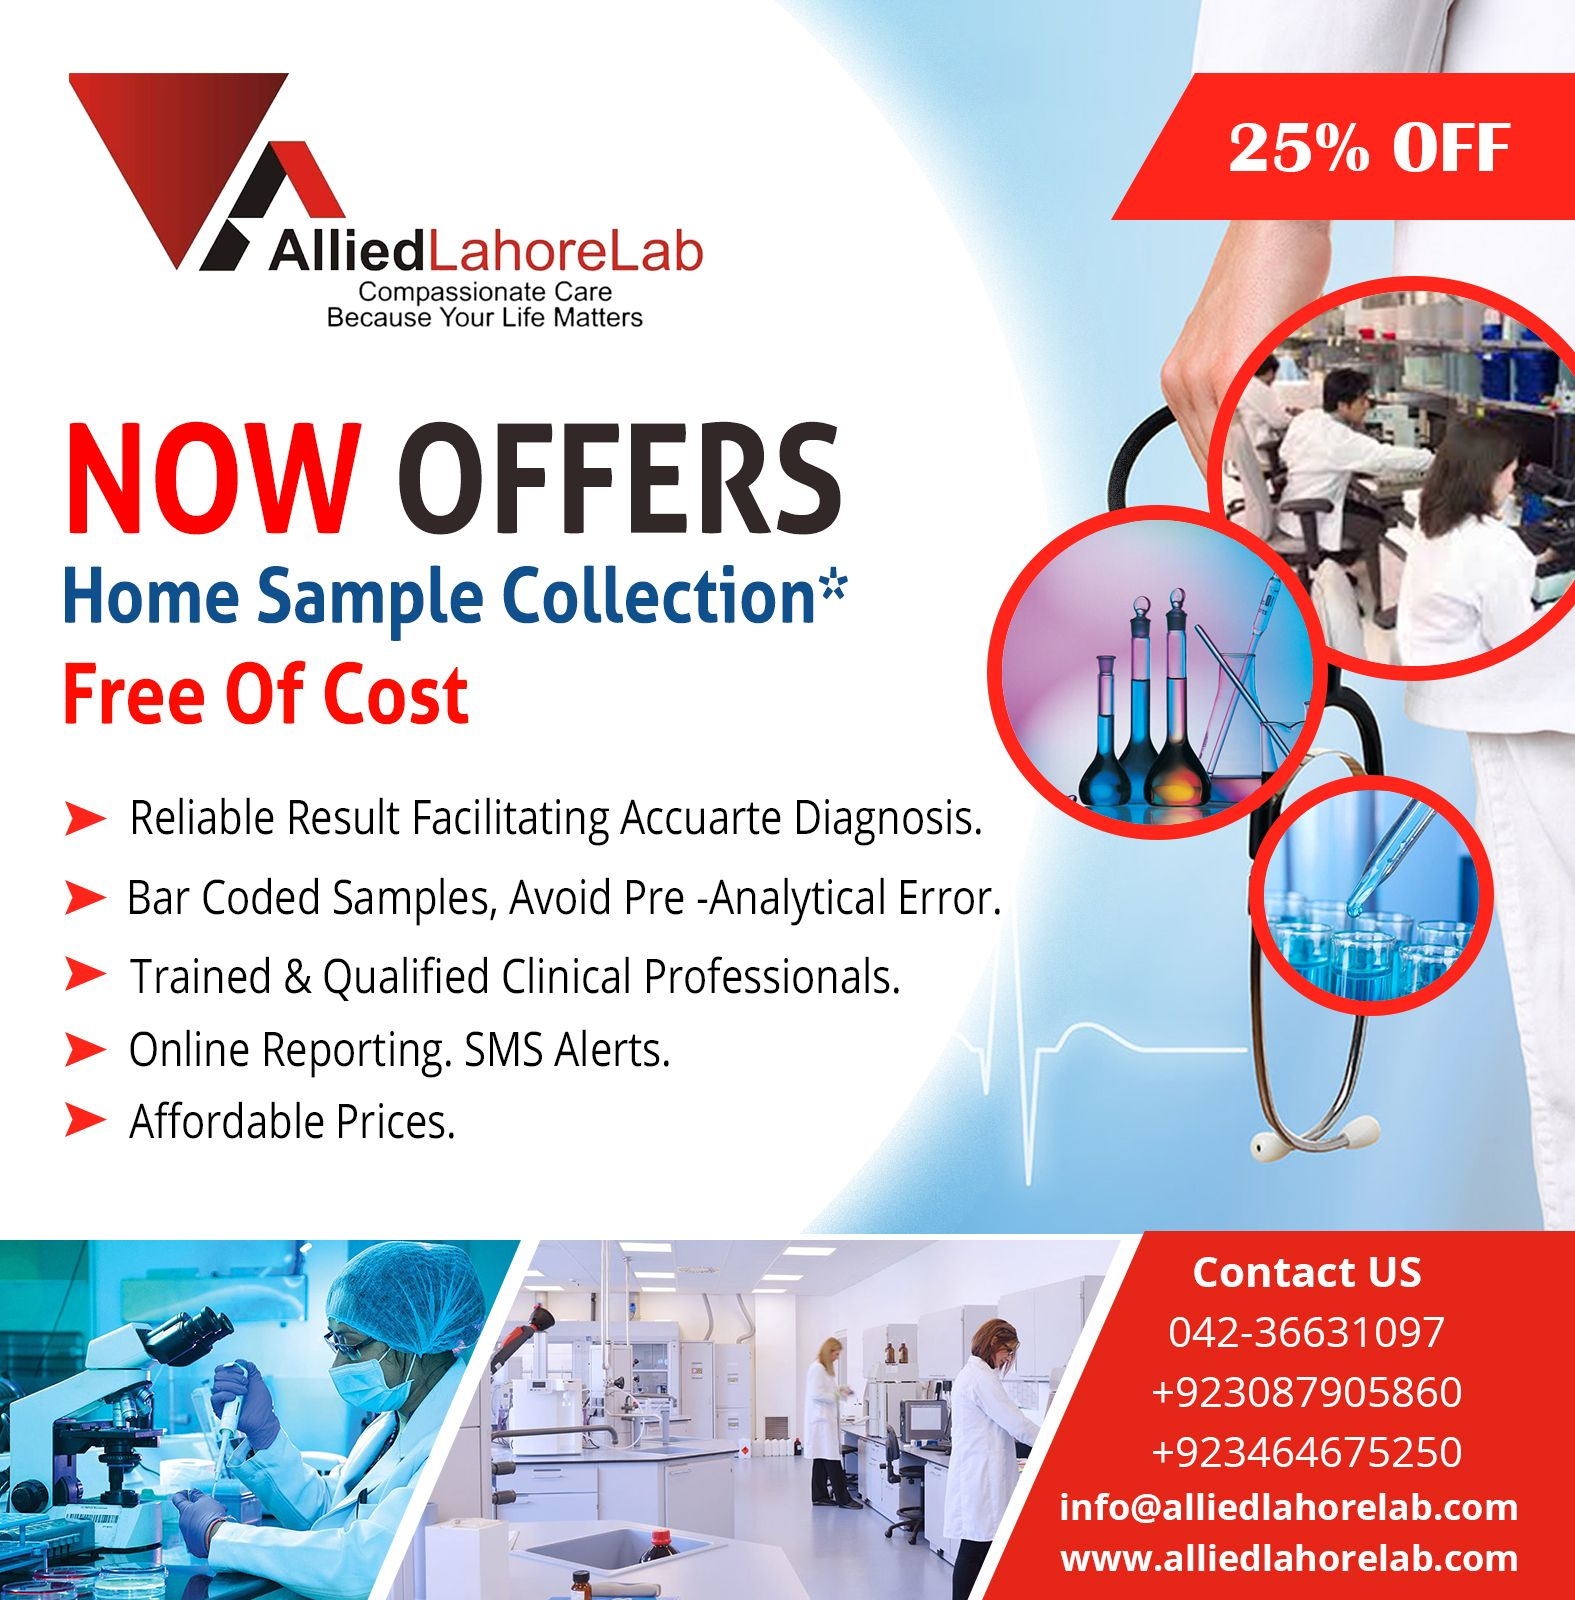 Discount offer on allied lahore lab diagnostic service